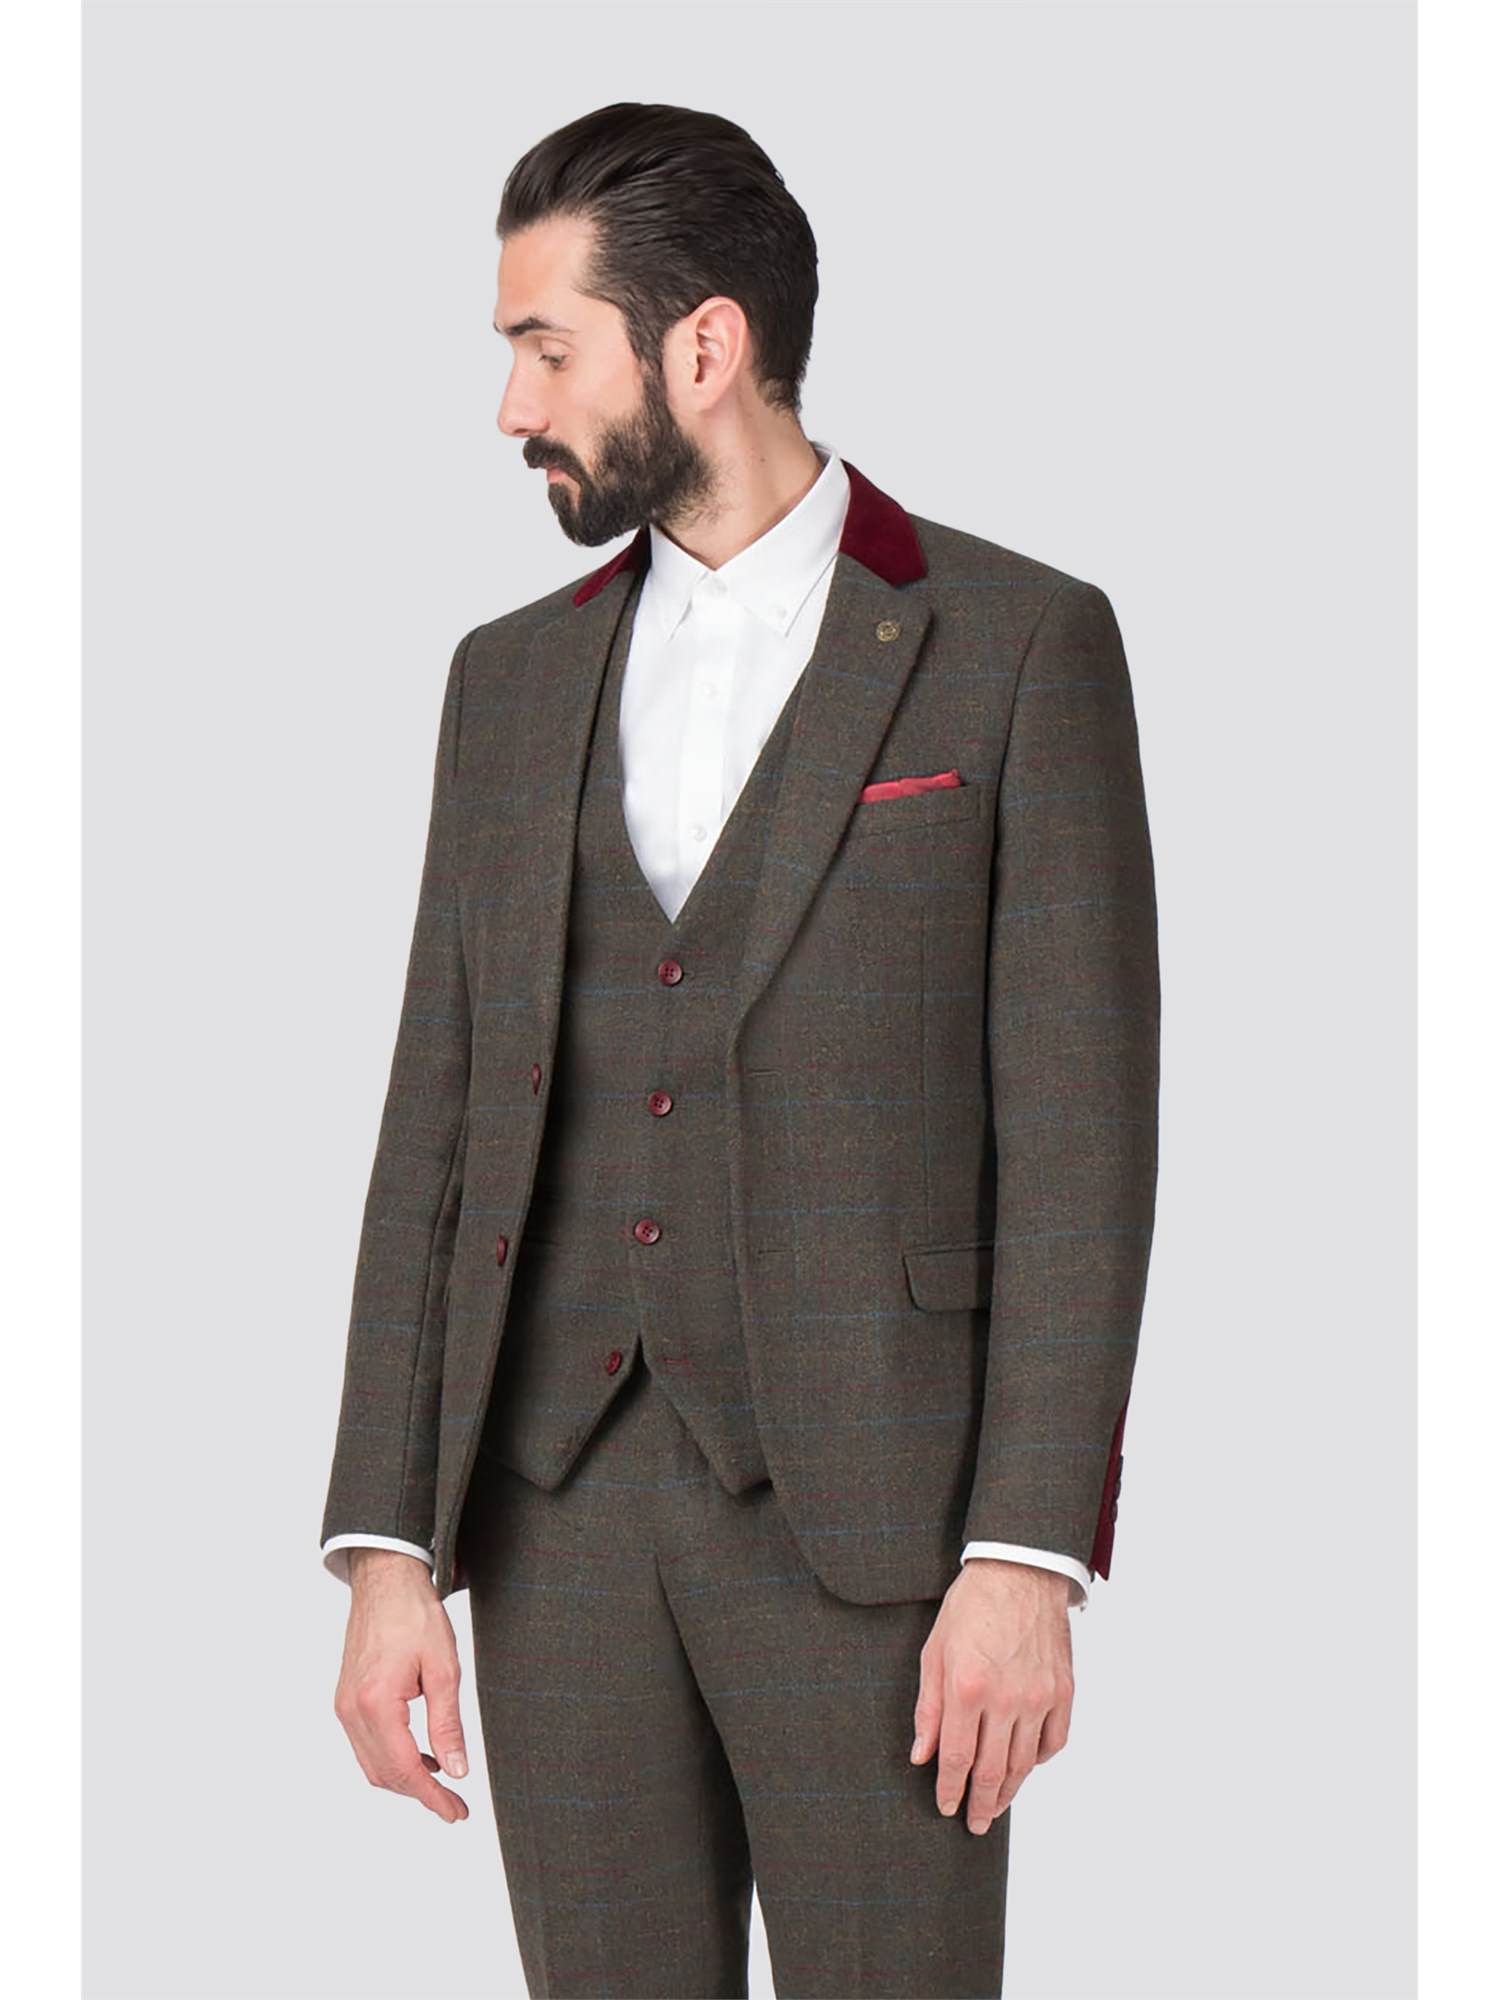 16dbdd2e444e58 Marc Darcy | Andrew Green Tweed Checked Suit | Suit Direct